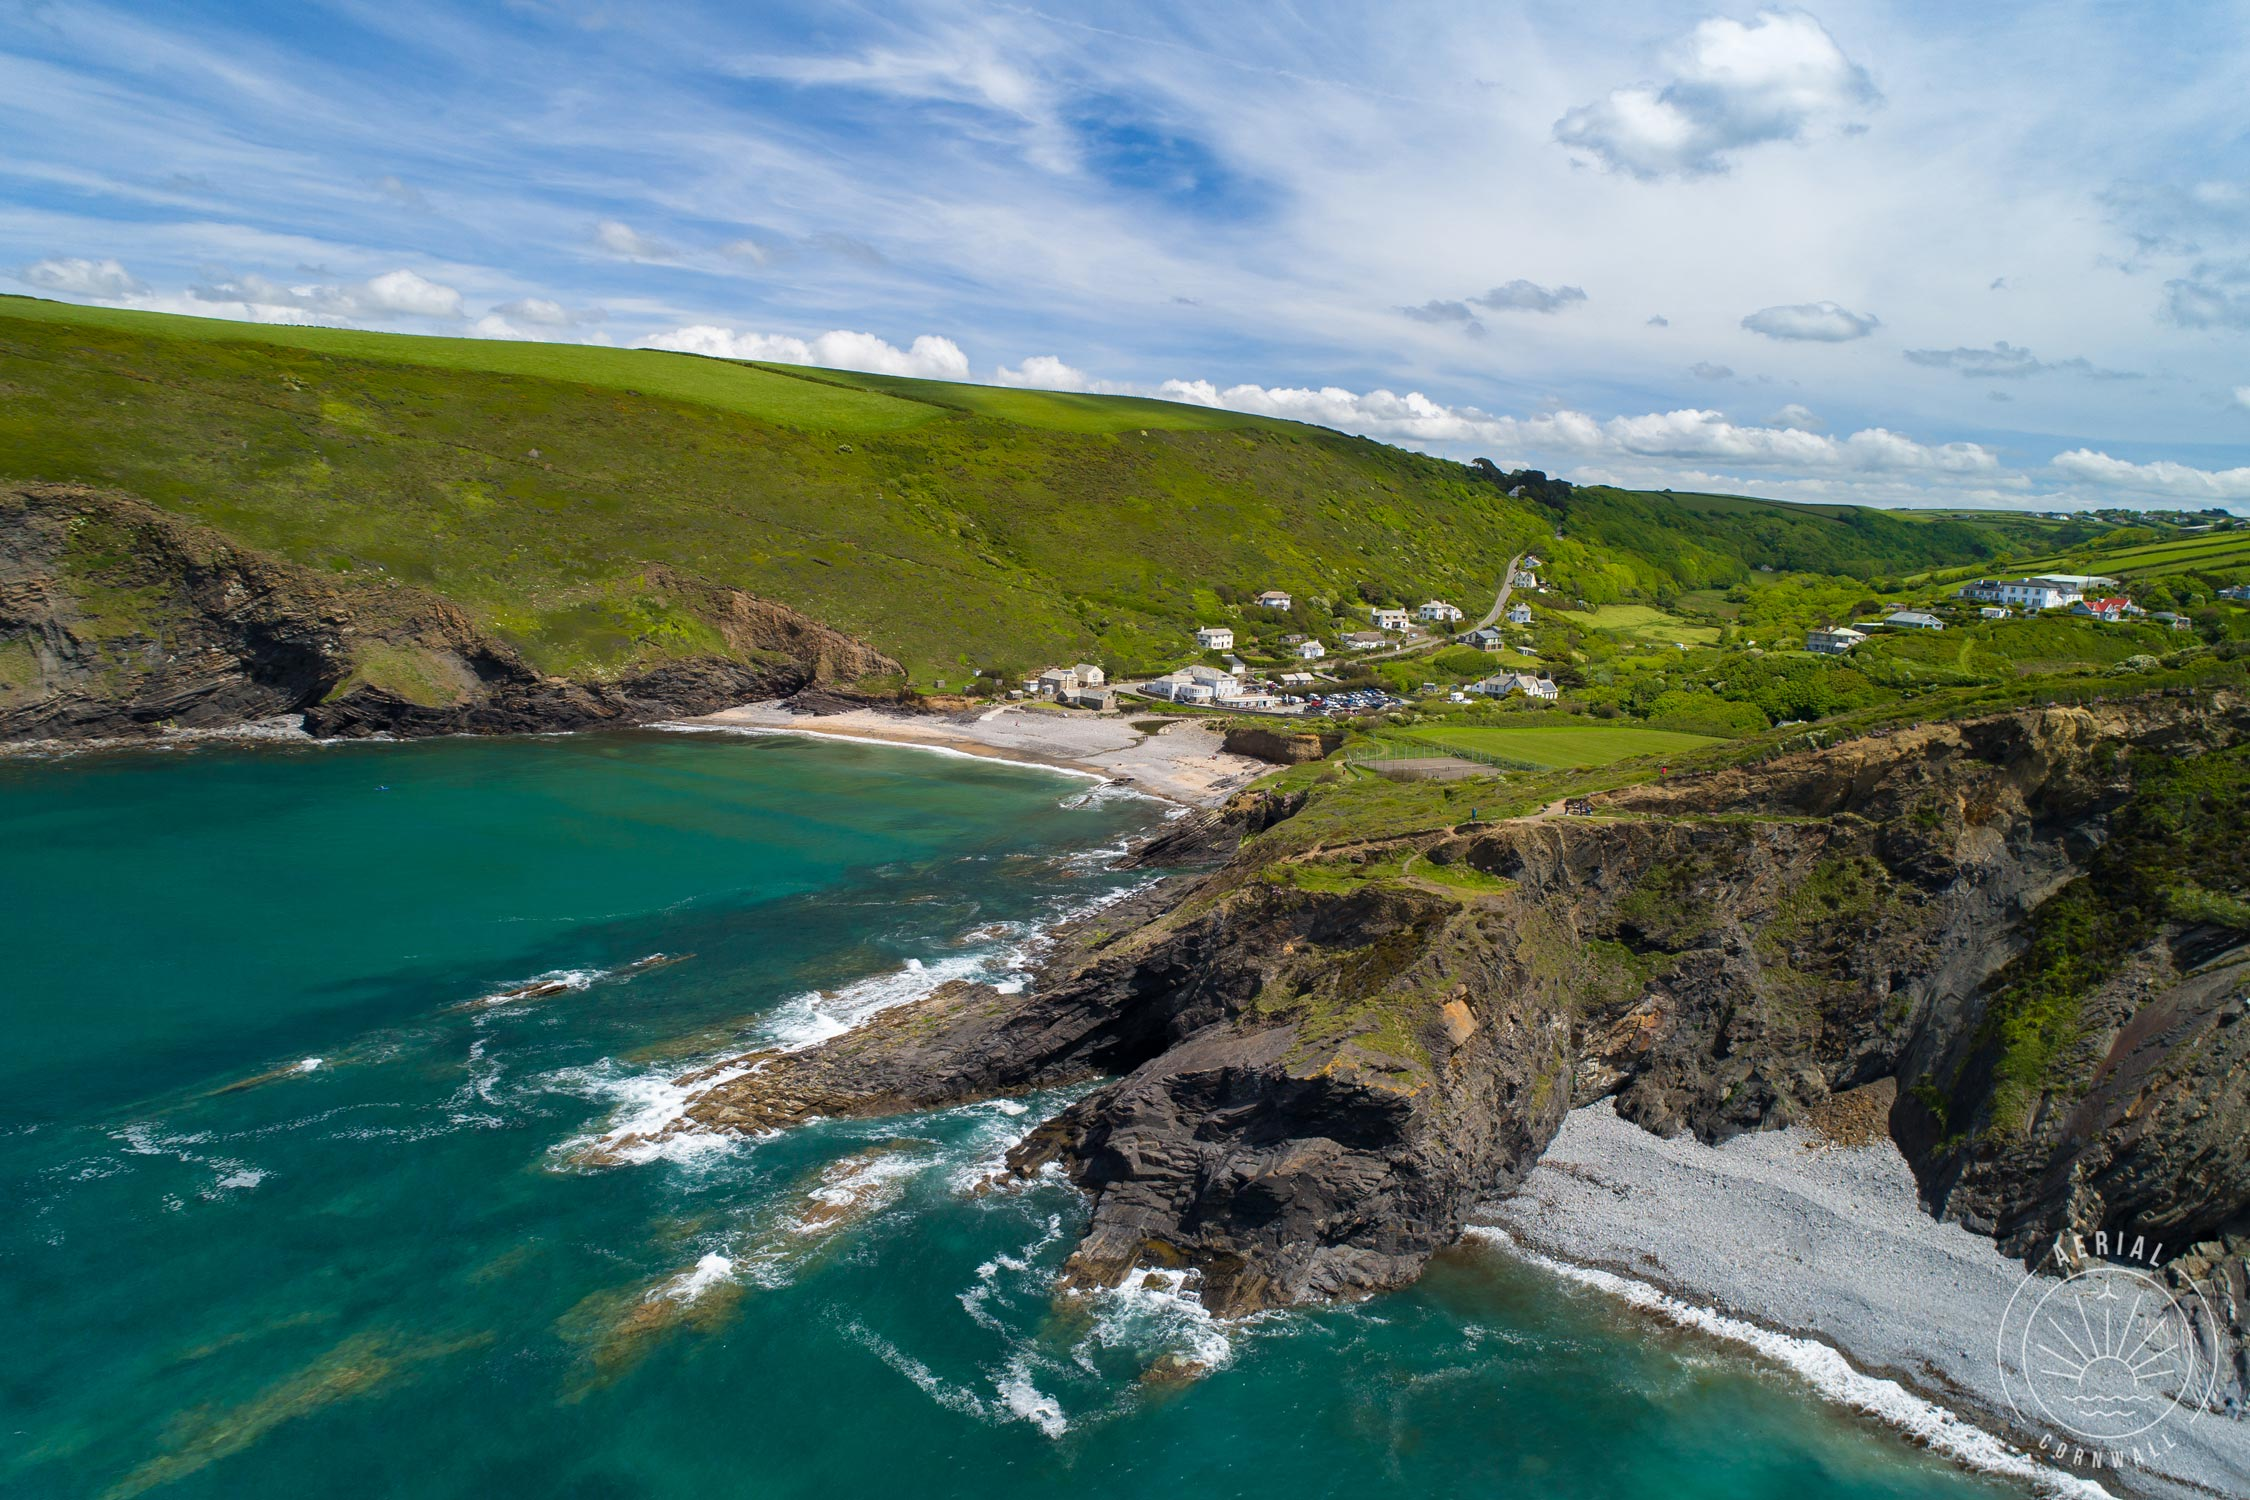 Location: Crackington Haven